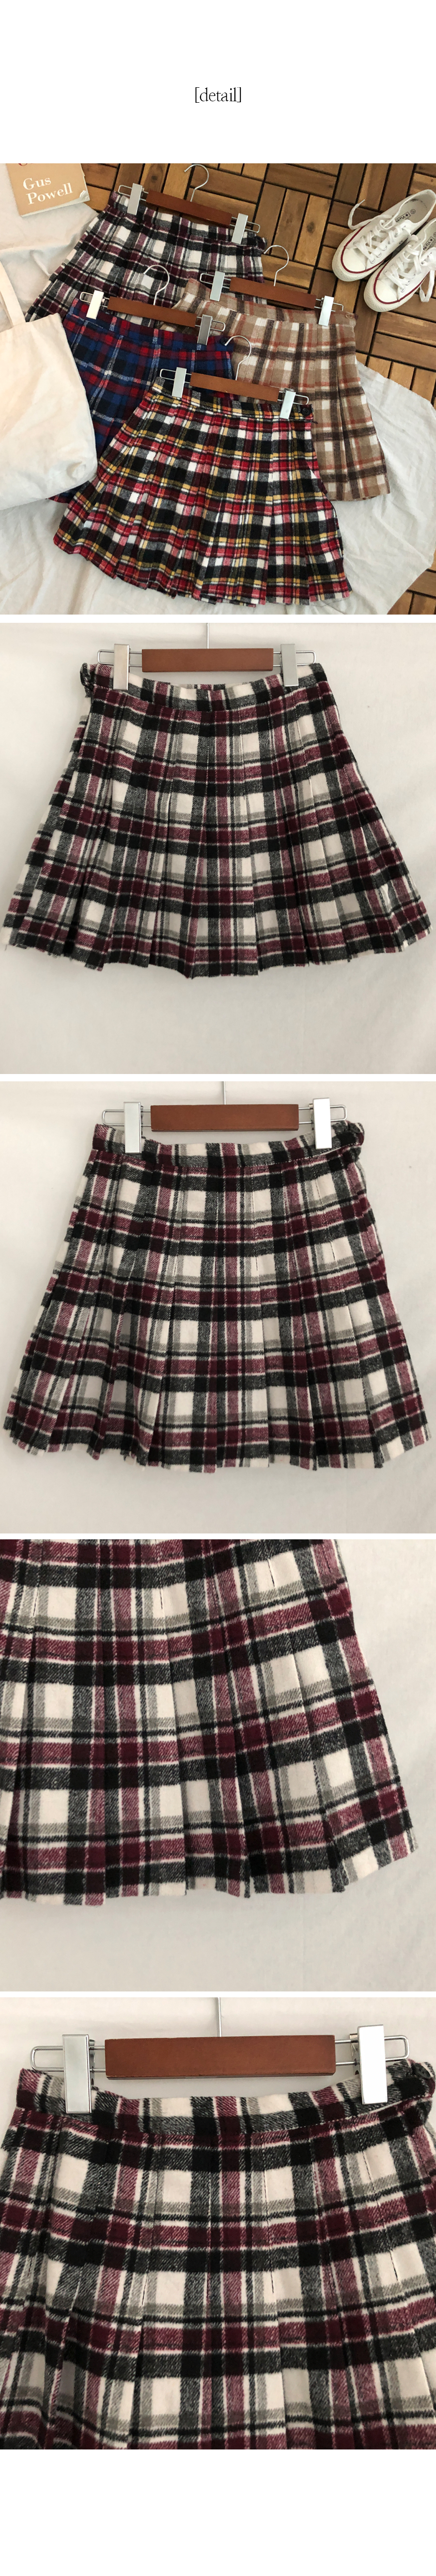 Tiny check tennis skirt